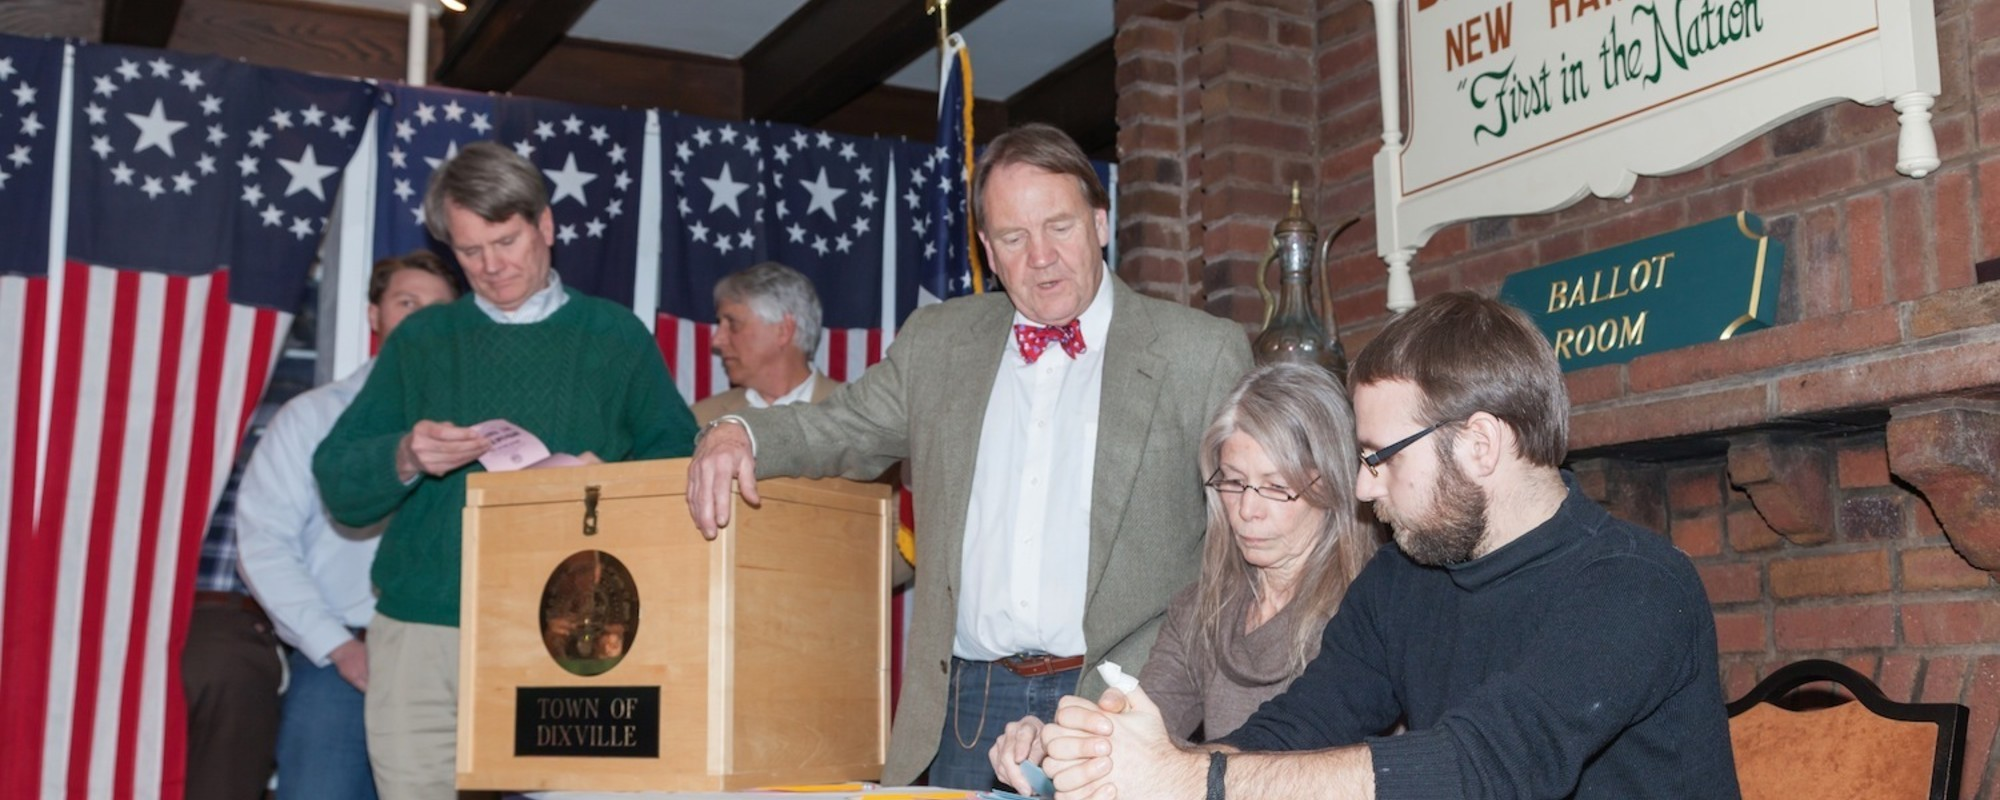 Photos from the Tiny New Hampshire Town Where Voters Cast Ballots at Midnight